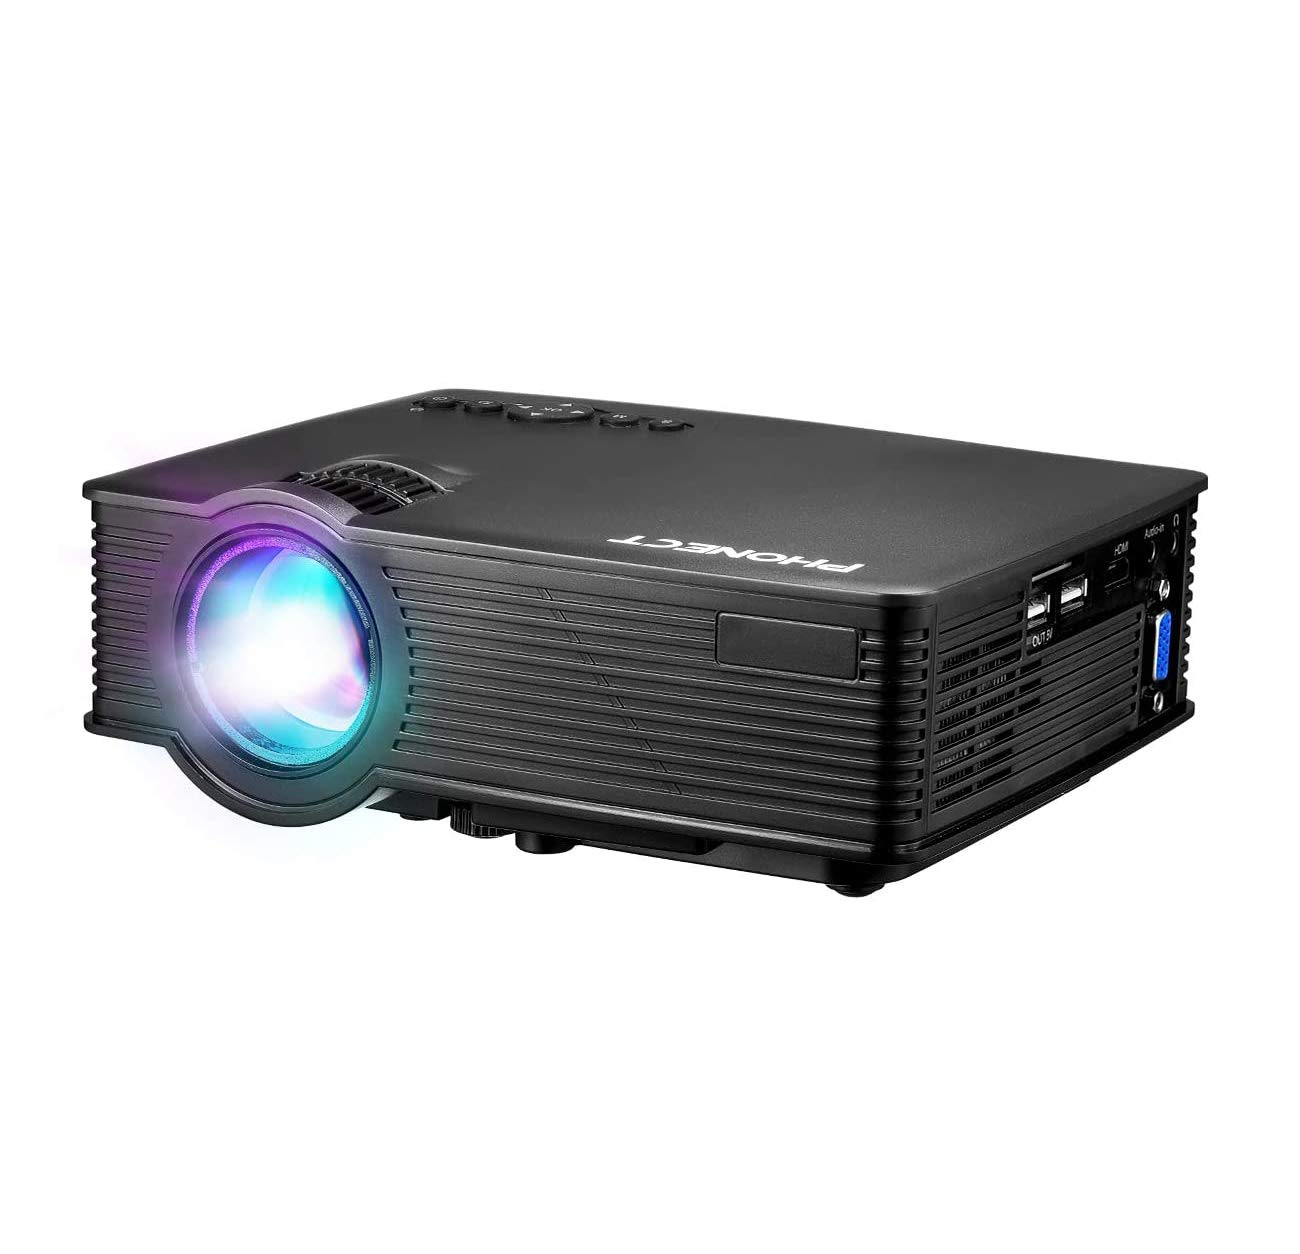 """Mini Projector 2019 Upgraded Portable Video Projector, 176"""" Display Multimedia Home Theater Projector, Compatible with Full HD 1080P HDMI,VGA,USB,AV,Laptop,Smartphone"""